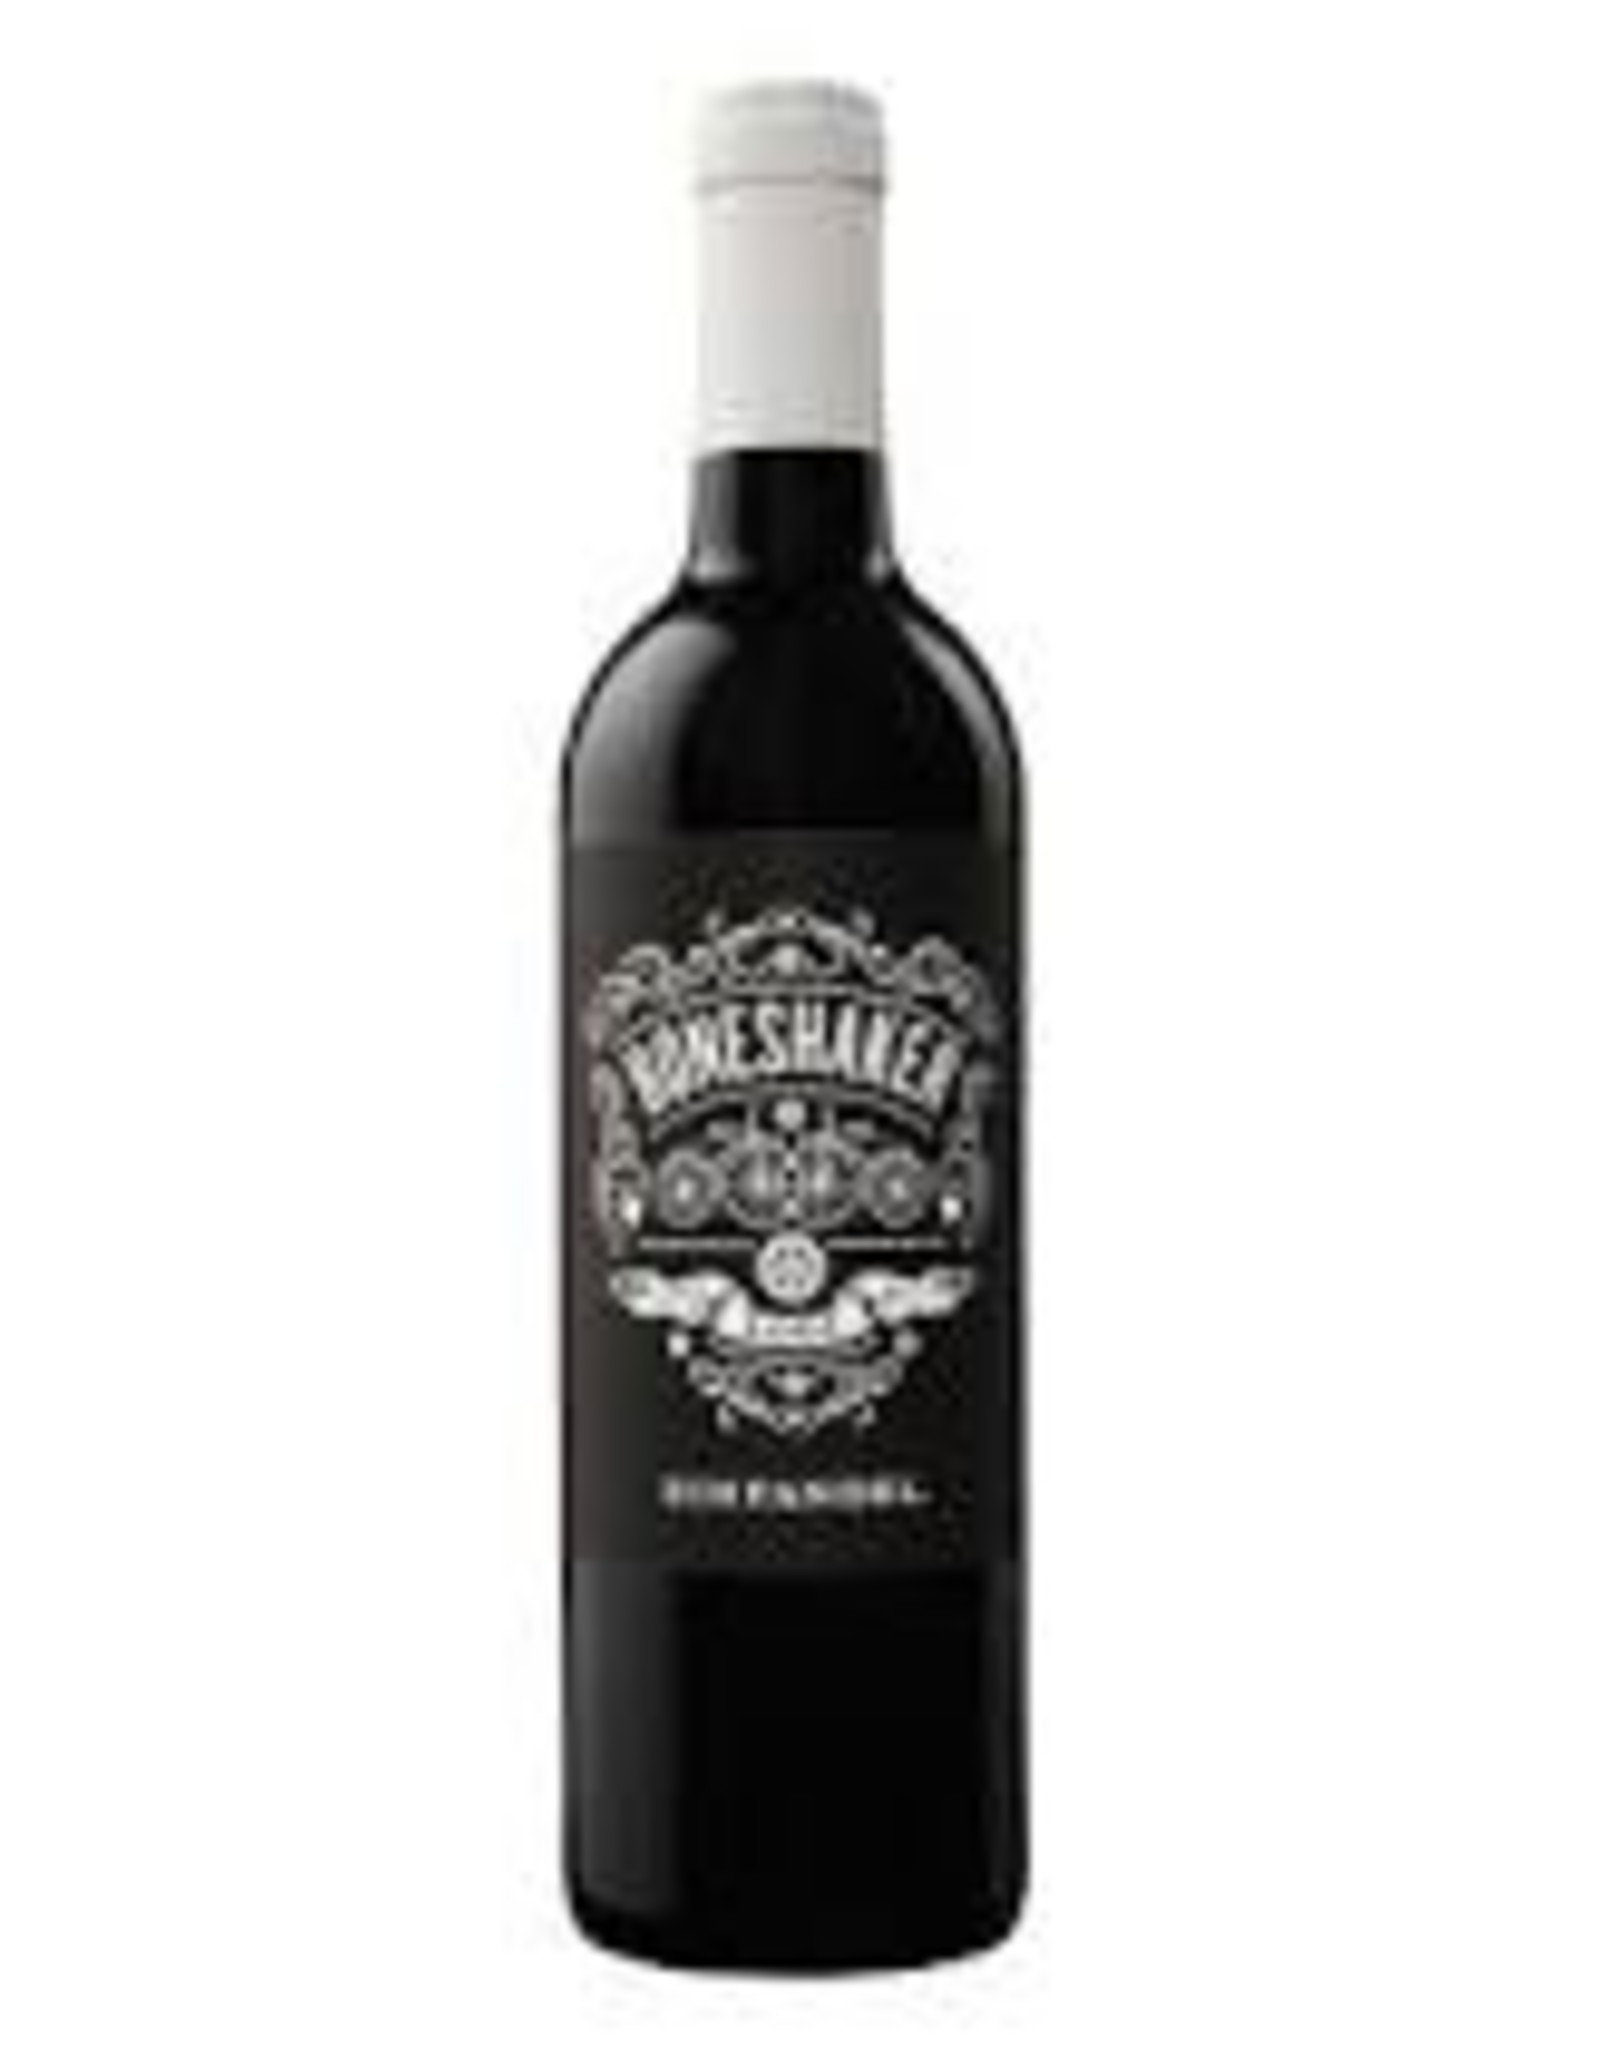 Red Wine 2016, Boneshaker, Zinfandel,  Lodi, Central Valley, California, 15.0% Alc, CT87, TW90